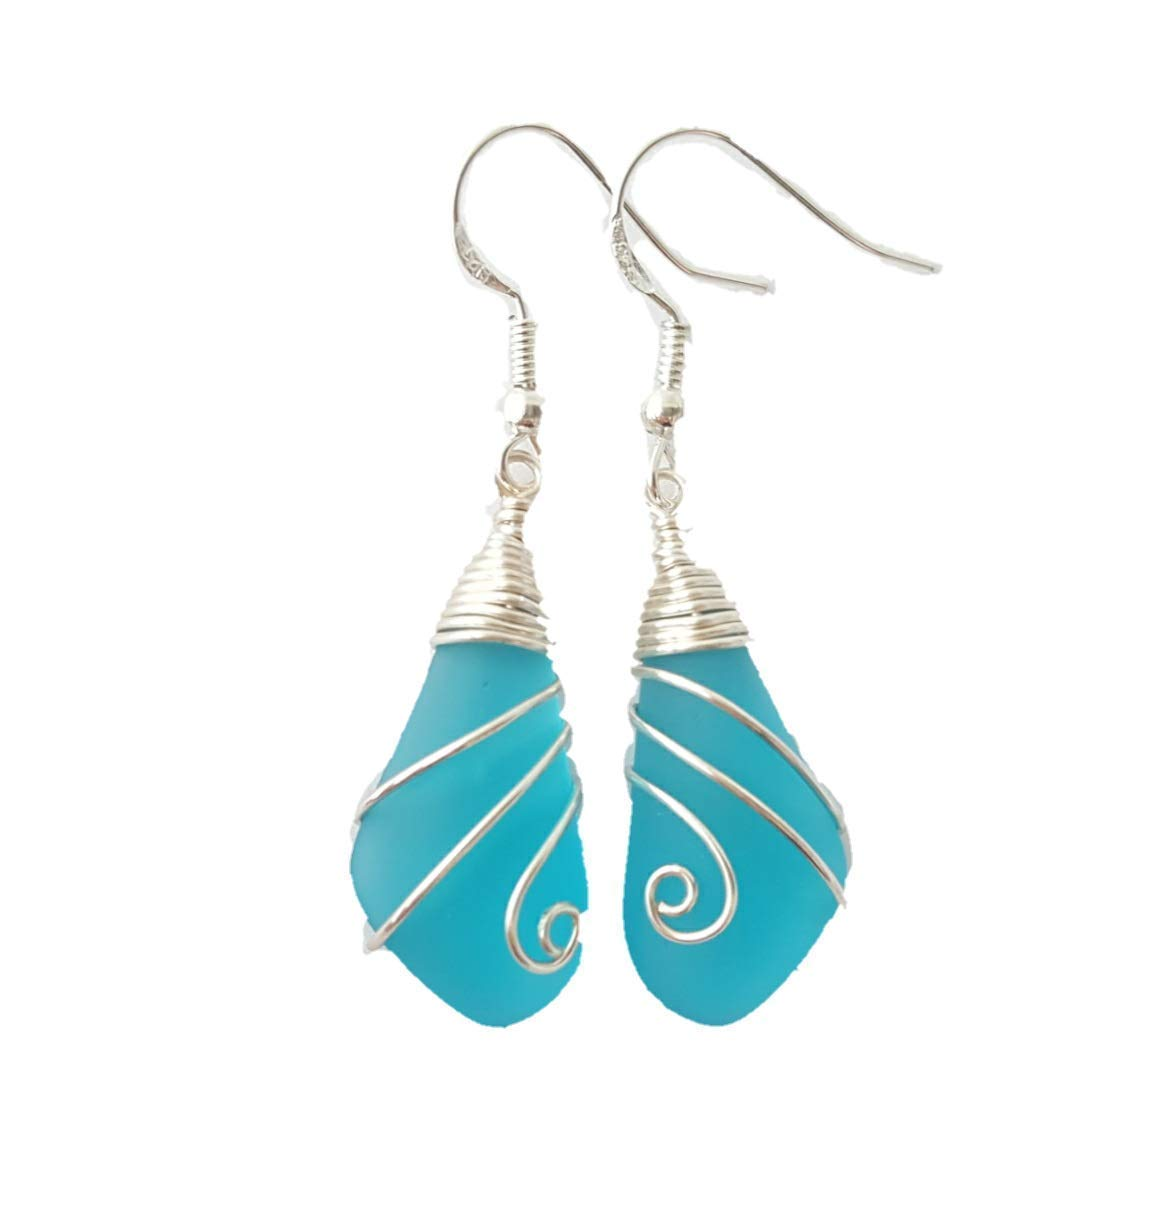 Handmade jewelry from Hawaii, swirls wire wrapped Turquoise Bay blue sea glass earrings, (Hawaii Gift Wrapped, Customizable Gift Message)